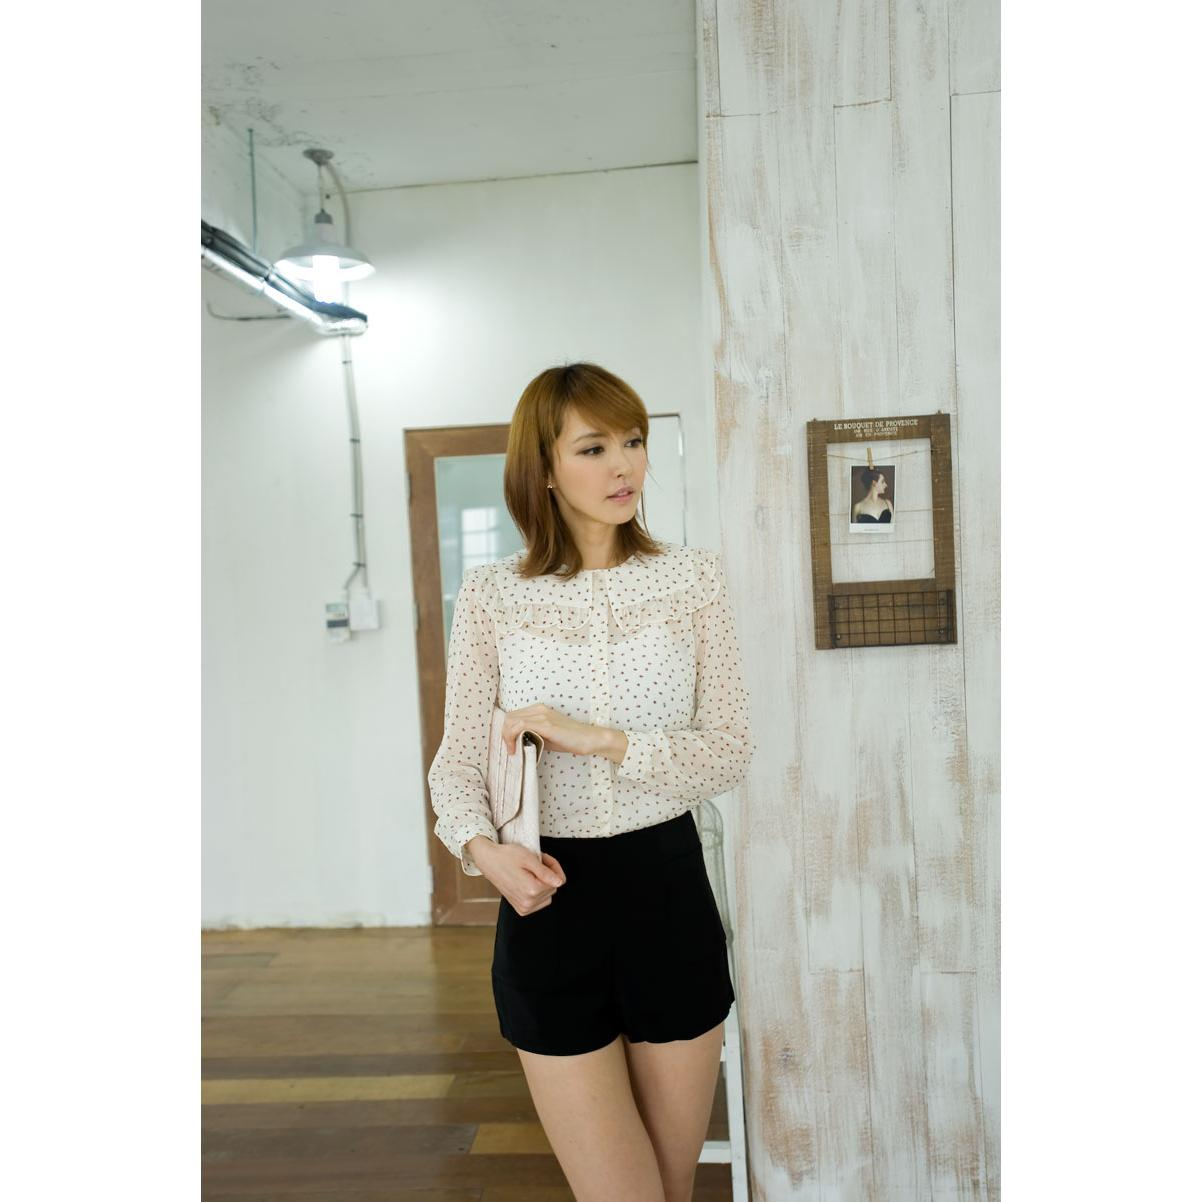 harga SQUARE COLLAR VINTAGE CHIFFON BLOUSE To accentuate your long, lean torso, match the blouse with a form-fitting knit. elevenia.co.id